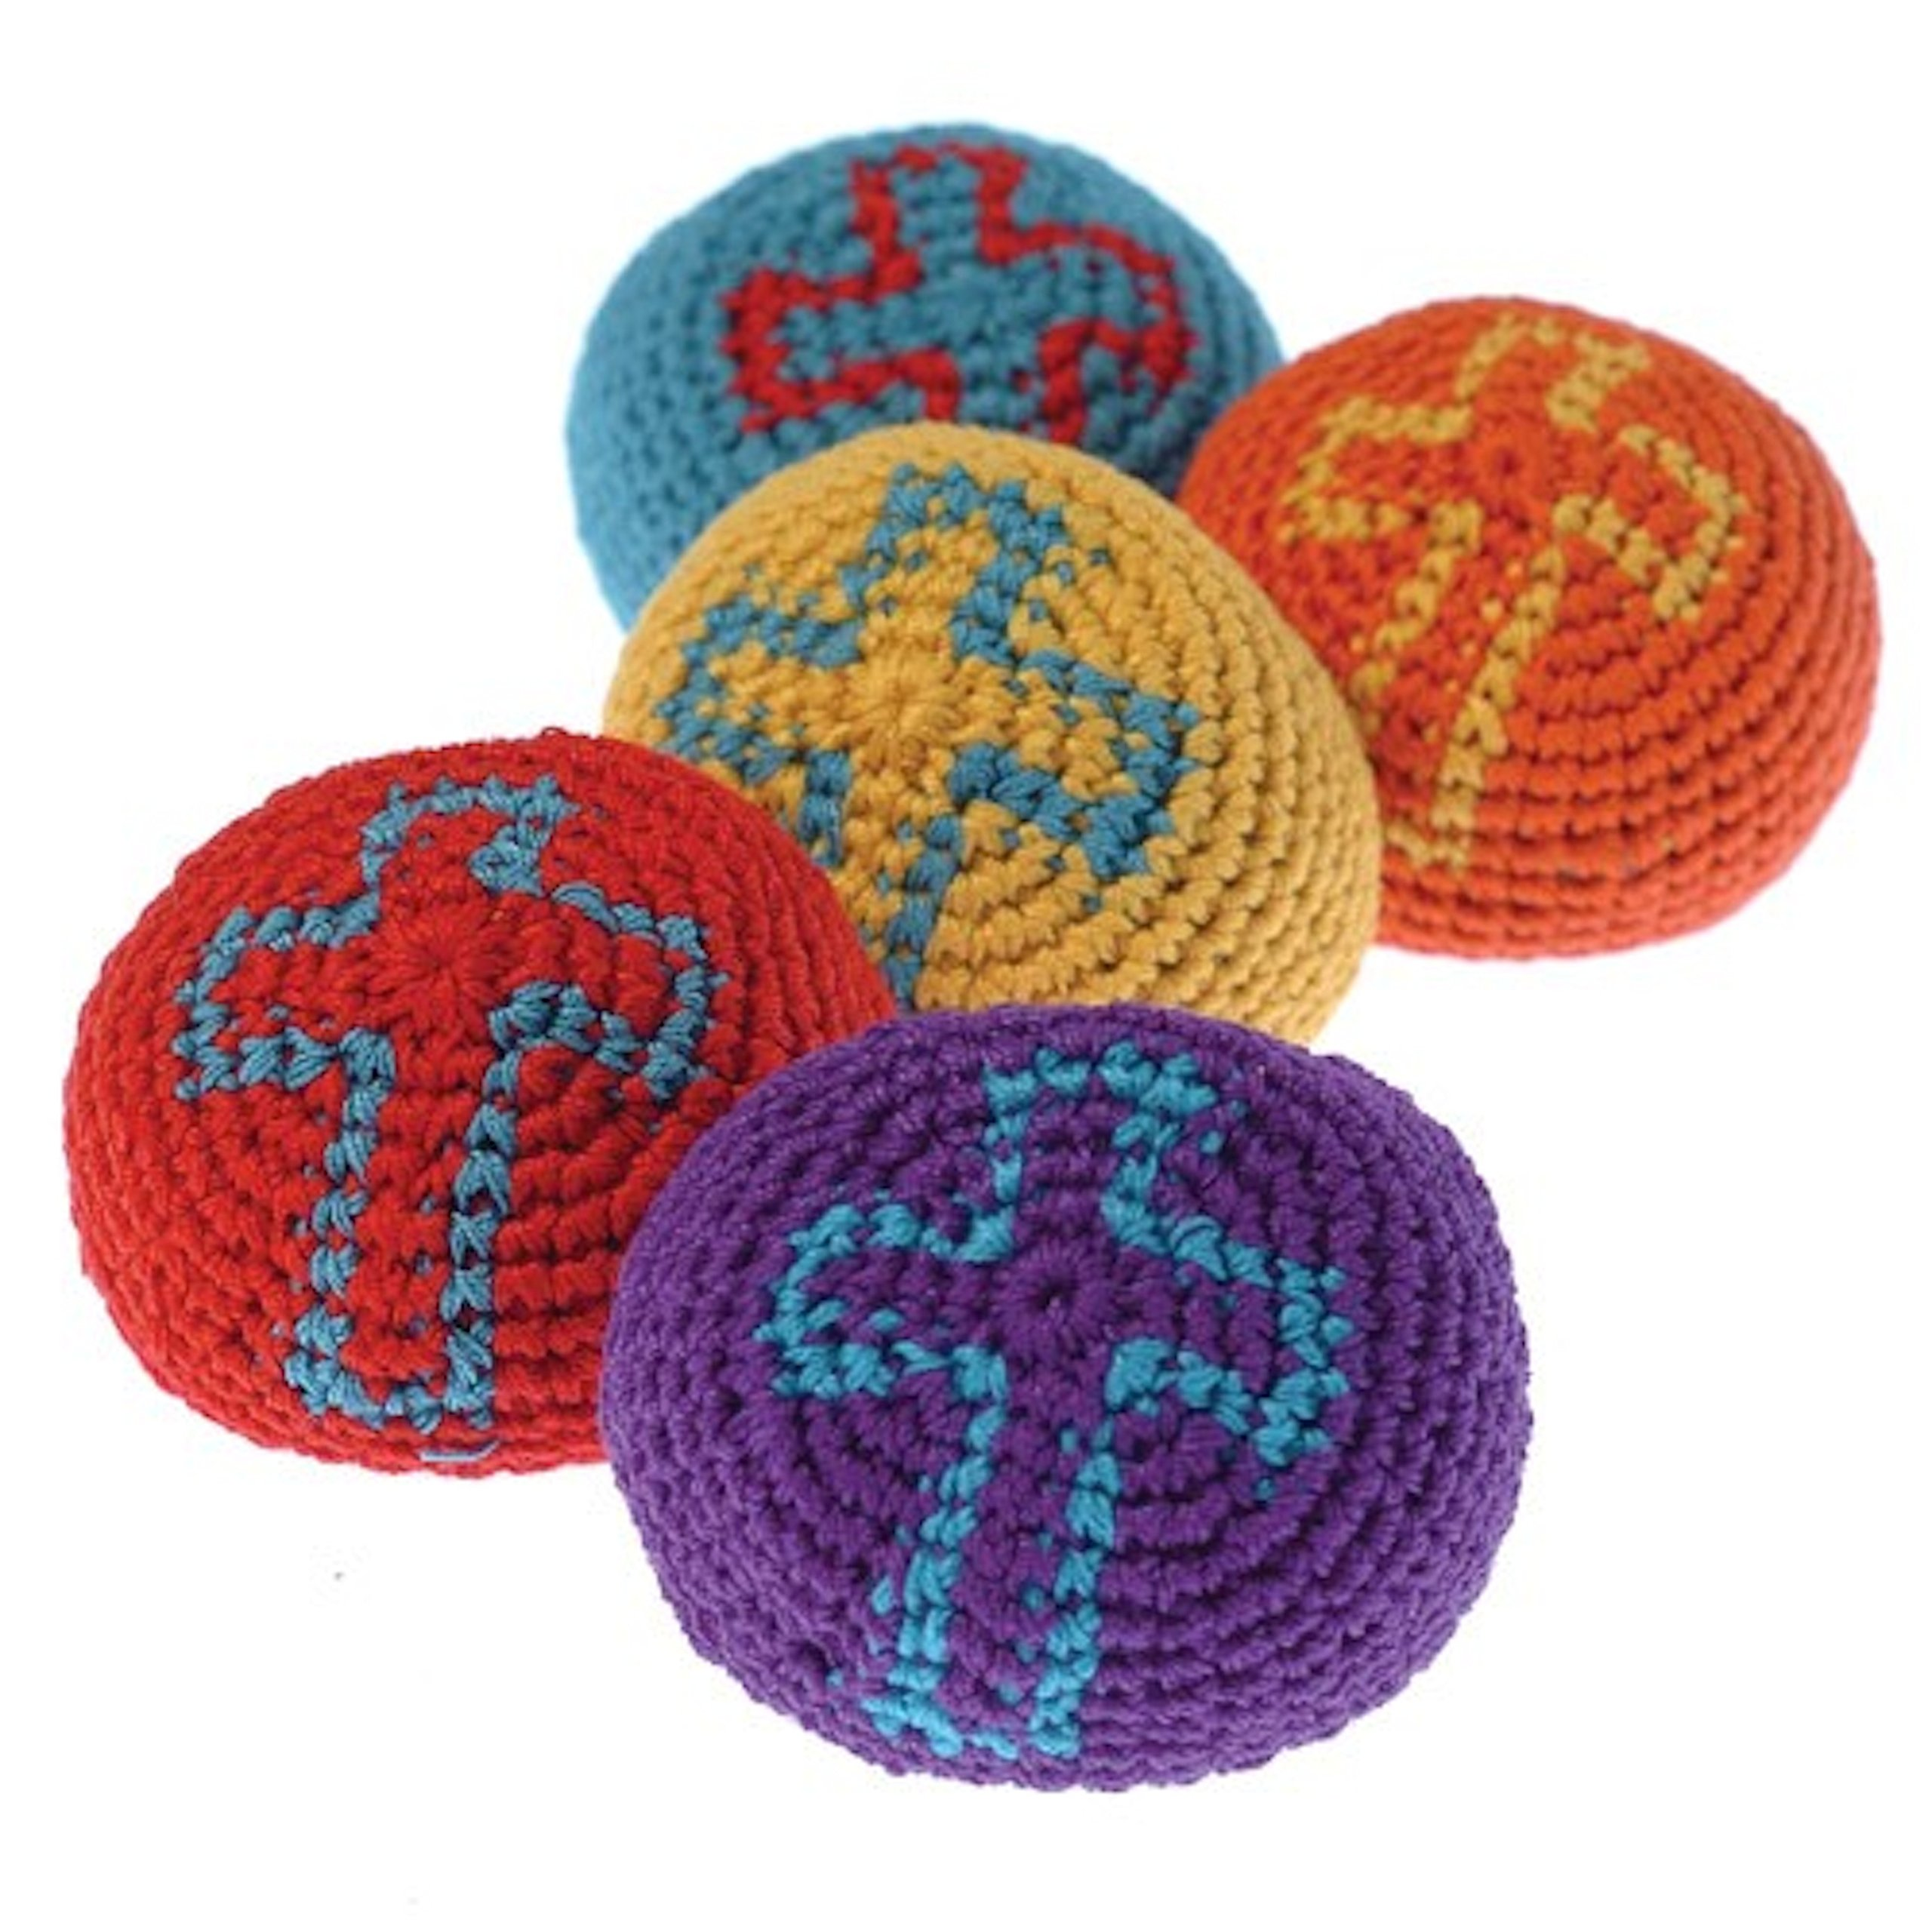 Lot Of 12 Assorted Color Religious Christian Theme Cross Knitted Hackie Sacks by US Toy